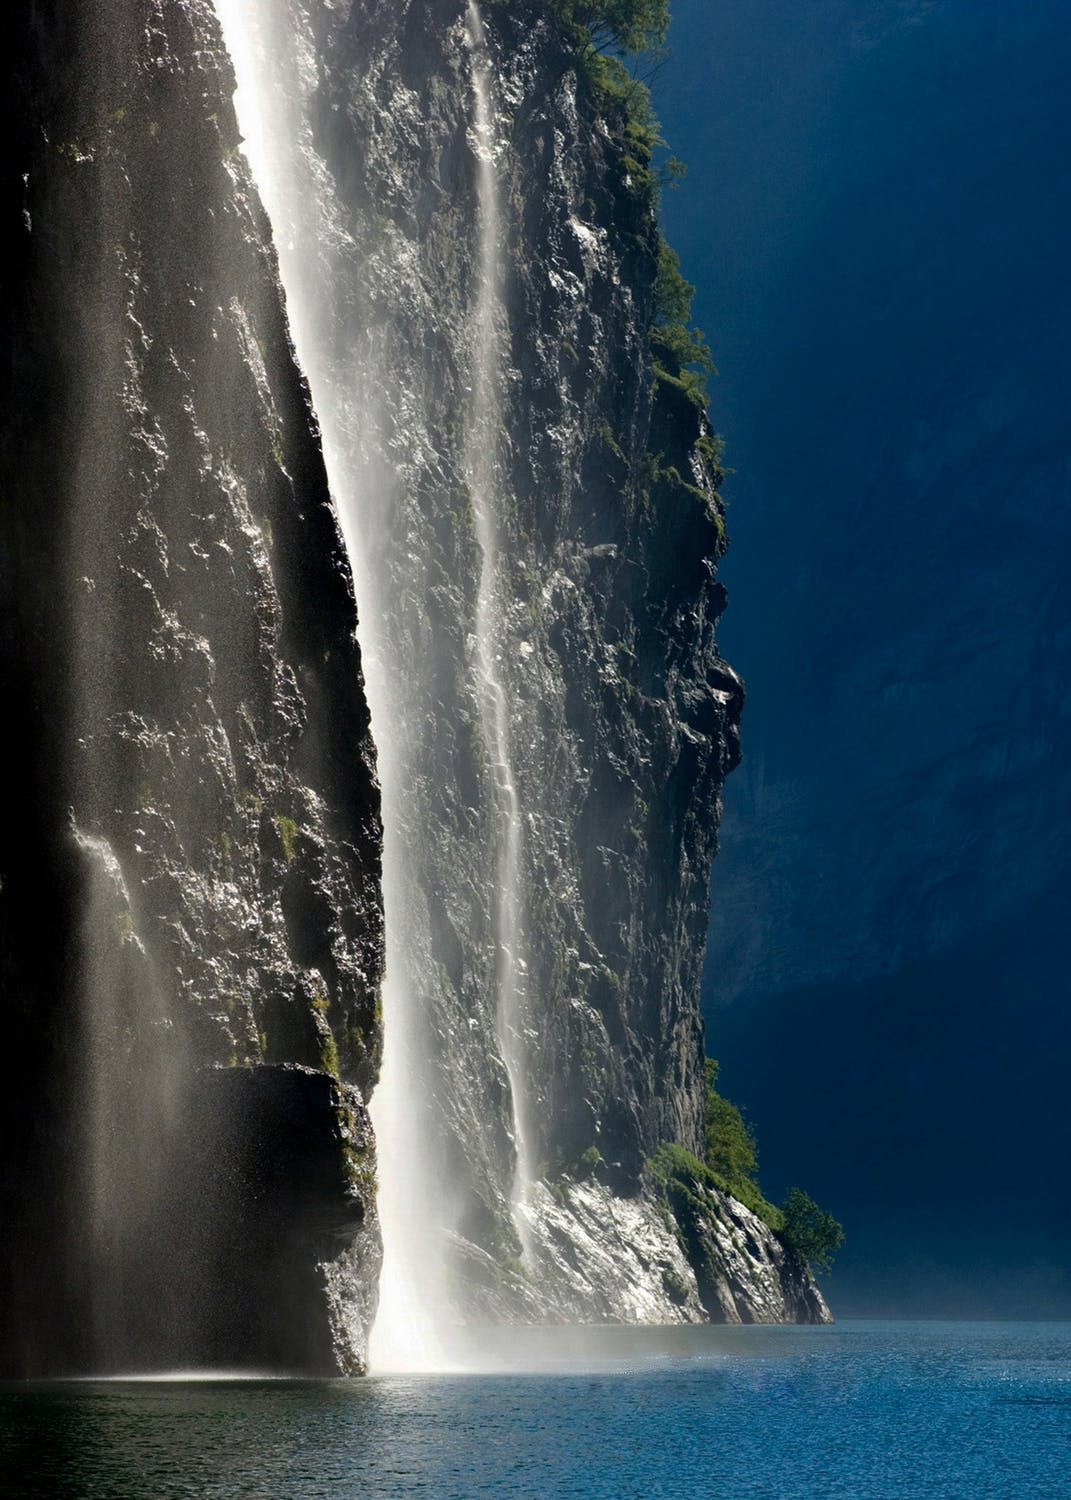 100 Instagram Captions for Waterfalls